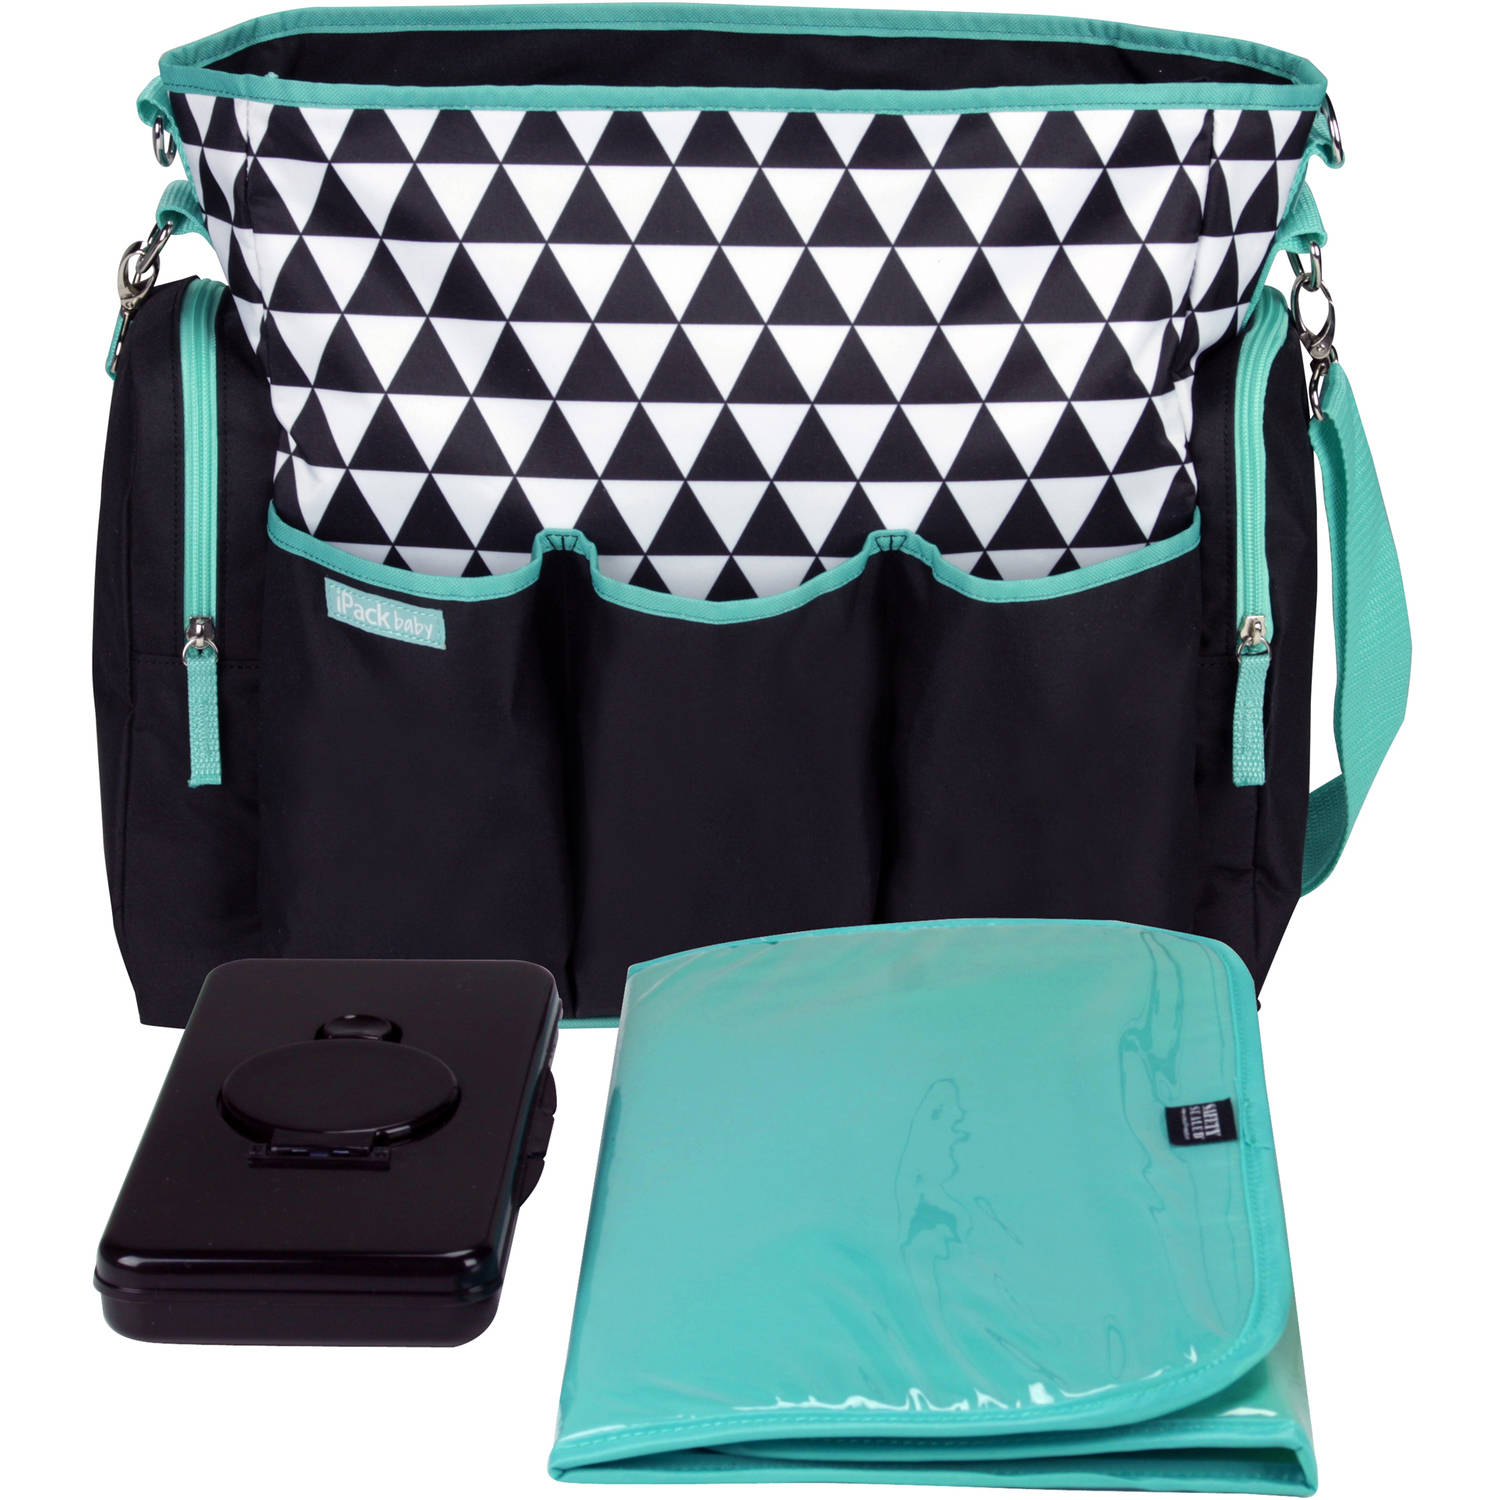 iPack Baby 3-Piece Diaper Bag Set, Black/Teal